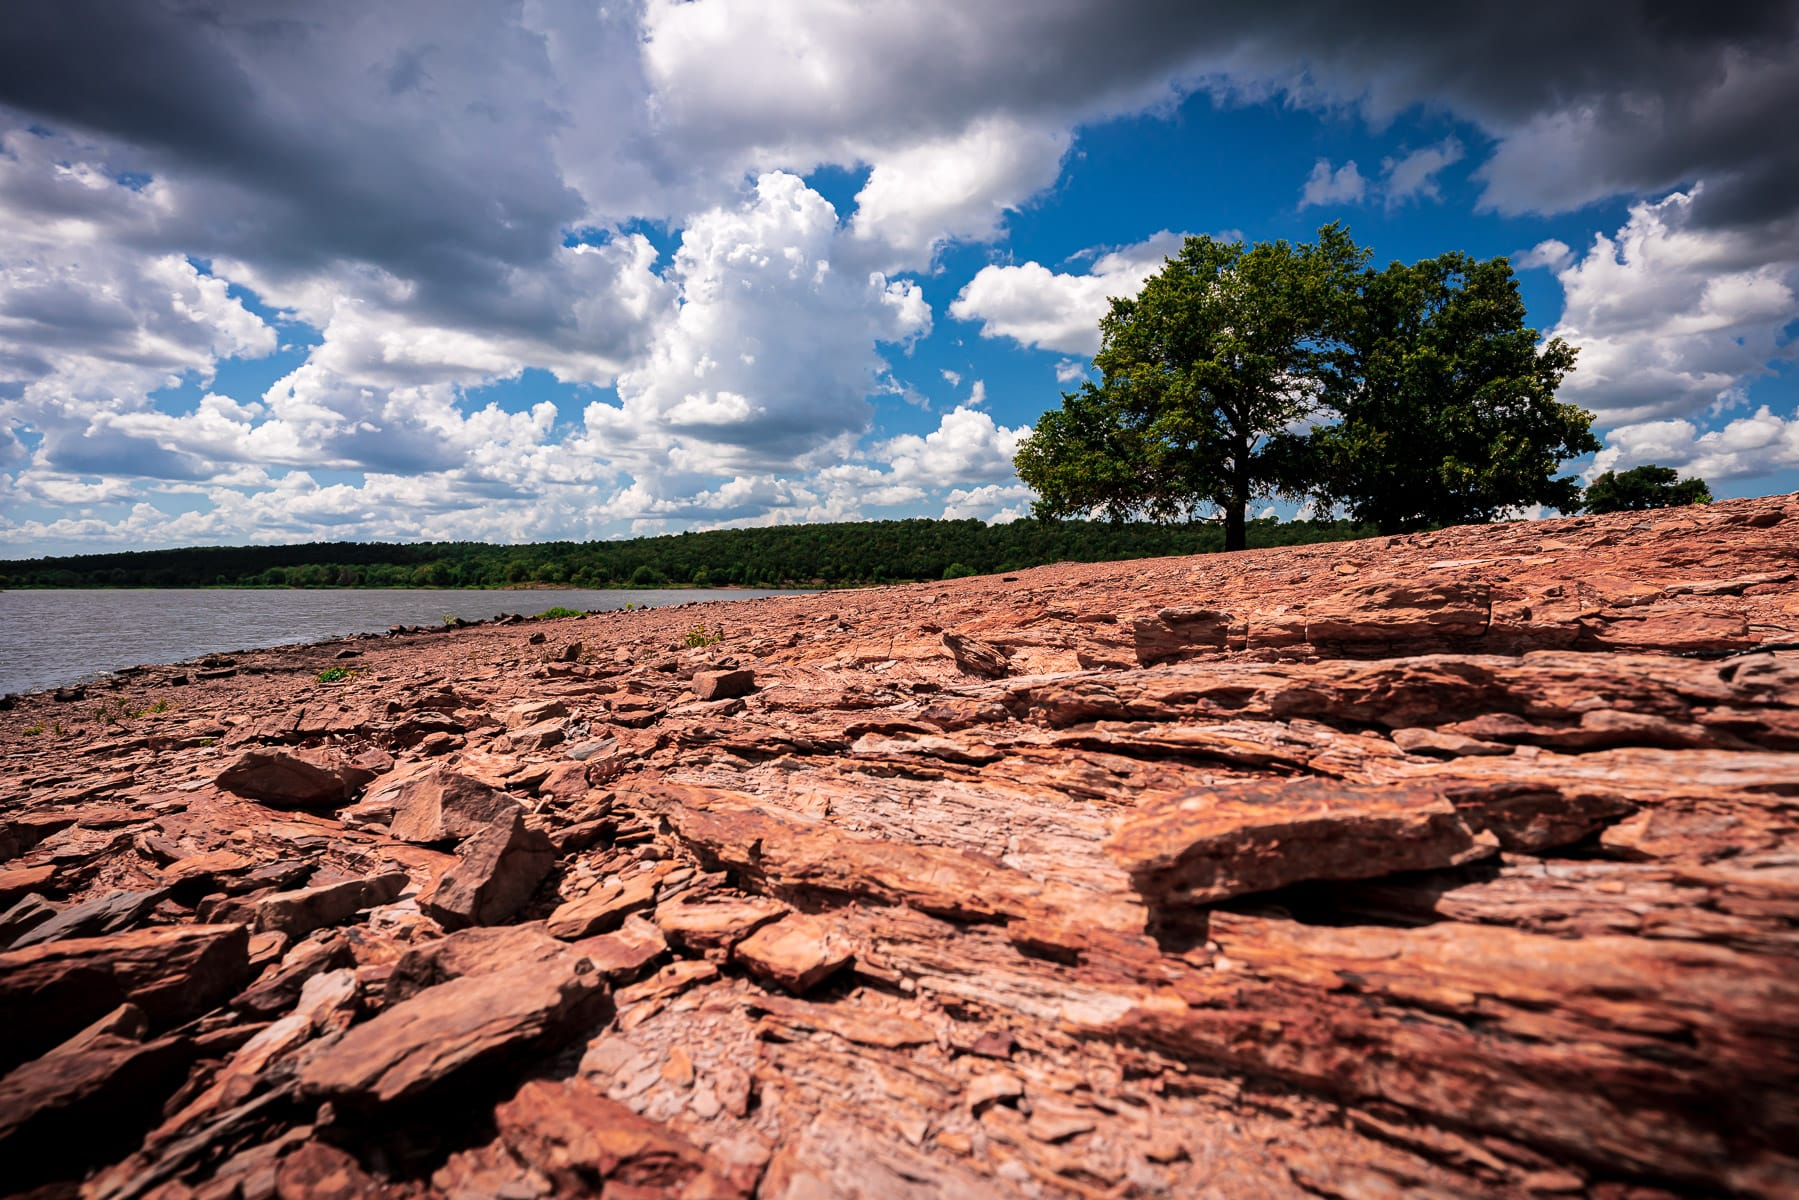 The rocky shore of Oklahoma's Lake Wister at Lake Wister State Park.